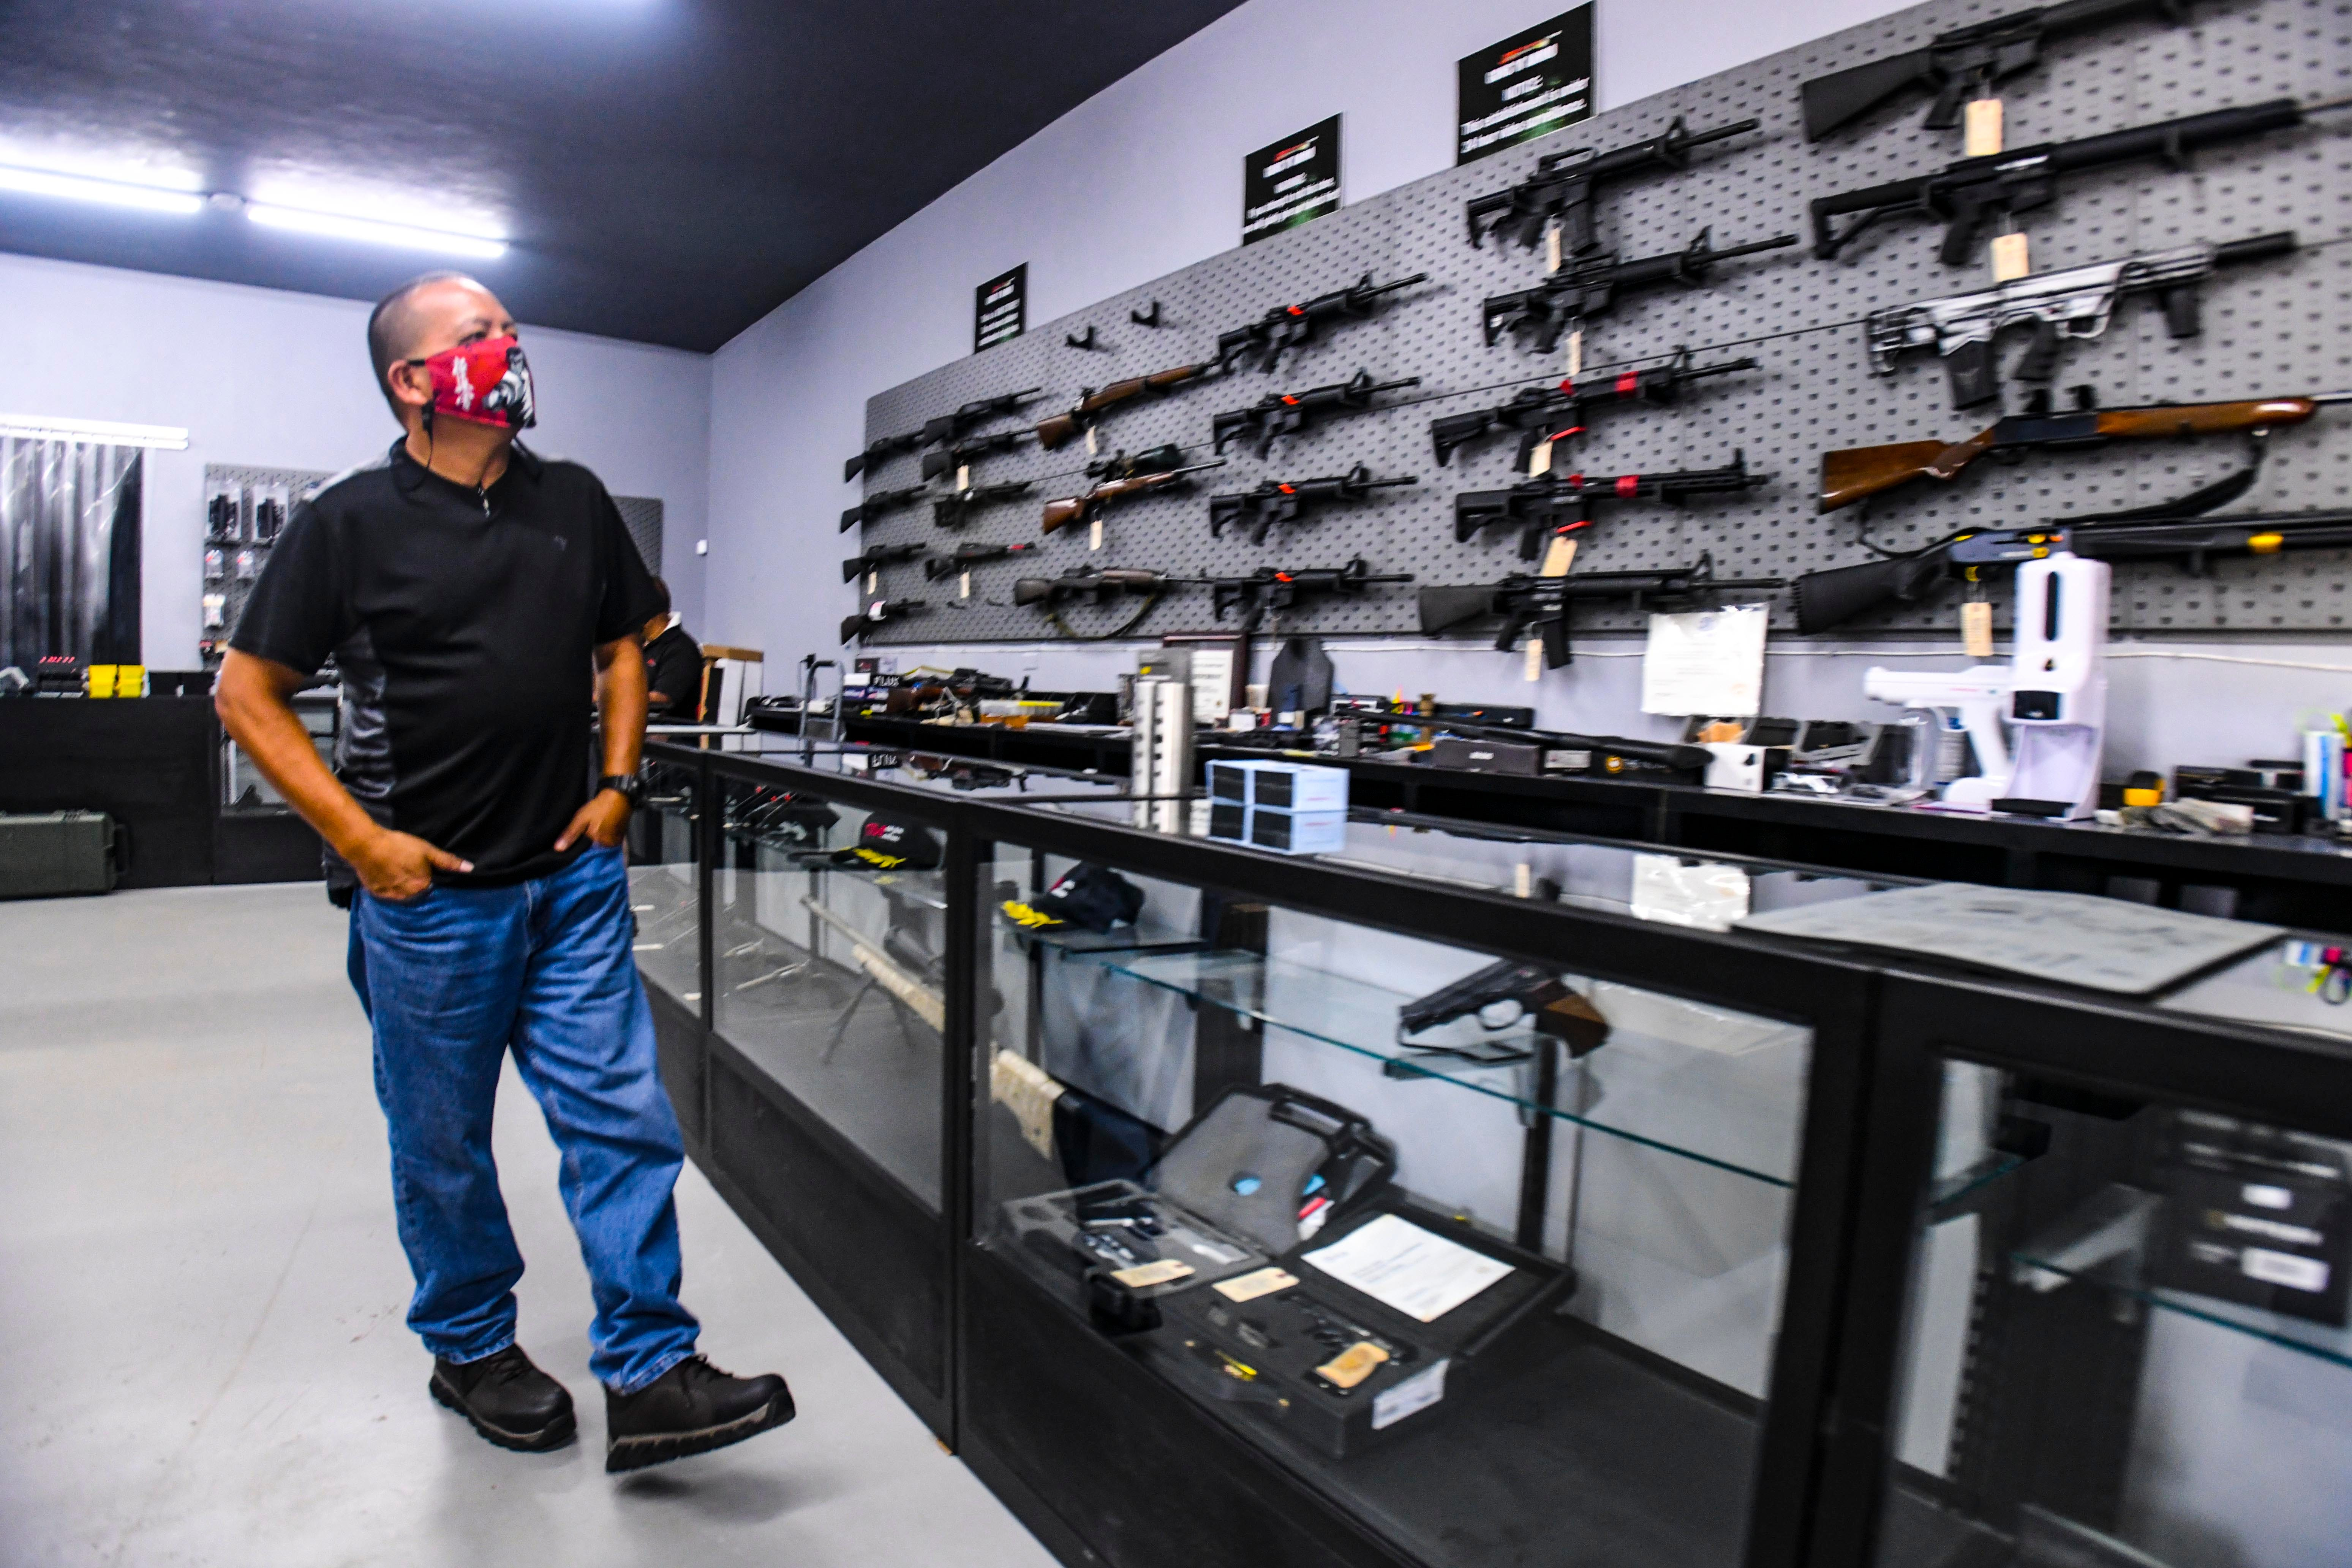 Piti resident Rich Perez looks over the collection of firearms displayed for sale at JTM Benchrest in Dededo May 8, 2021. Along with the gun shop, the business also operates the Sportsland Outdoor Shooting Range.